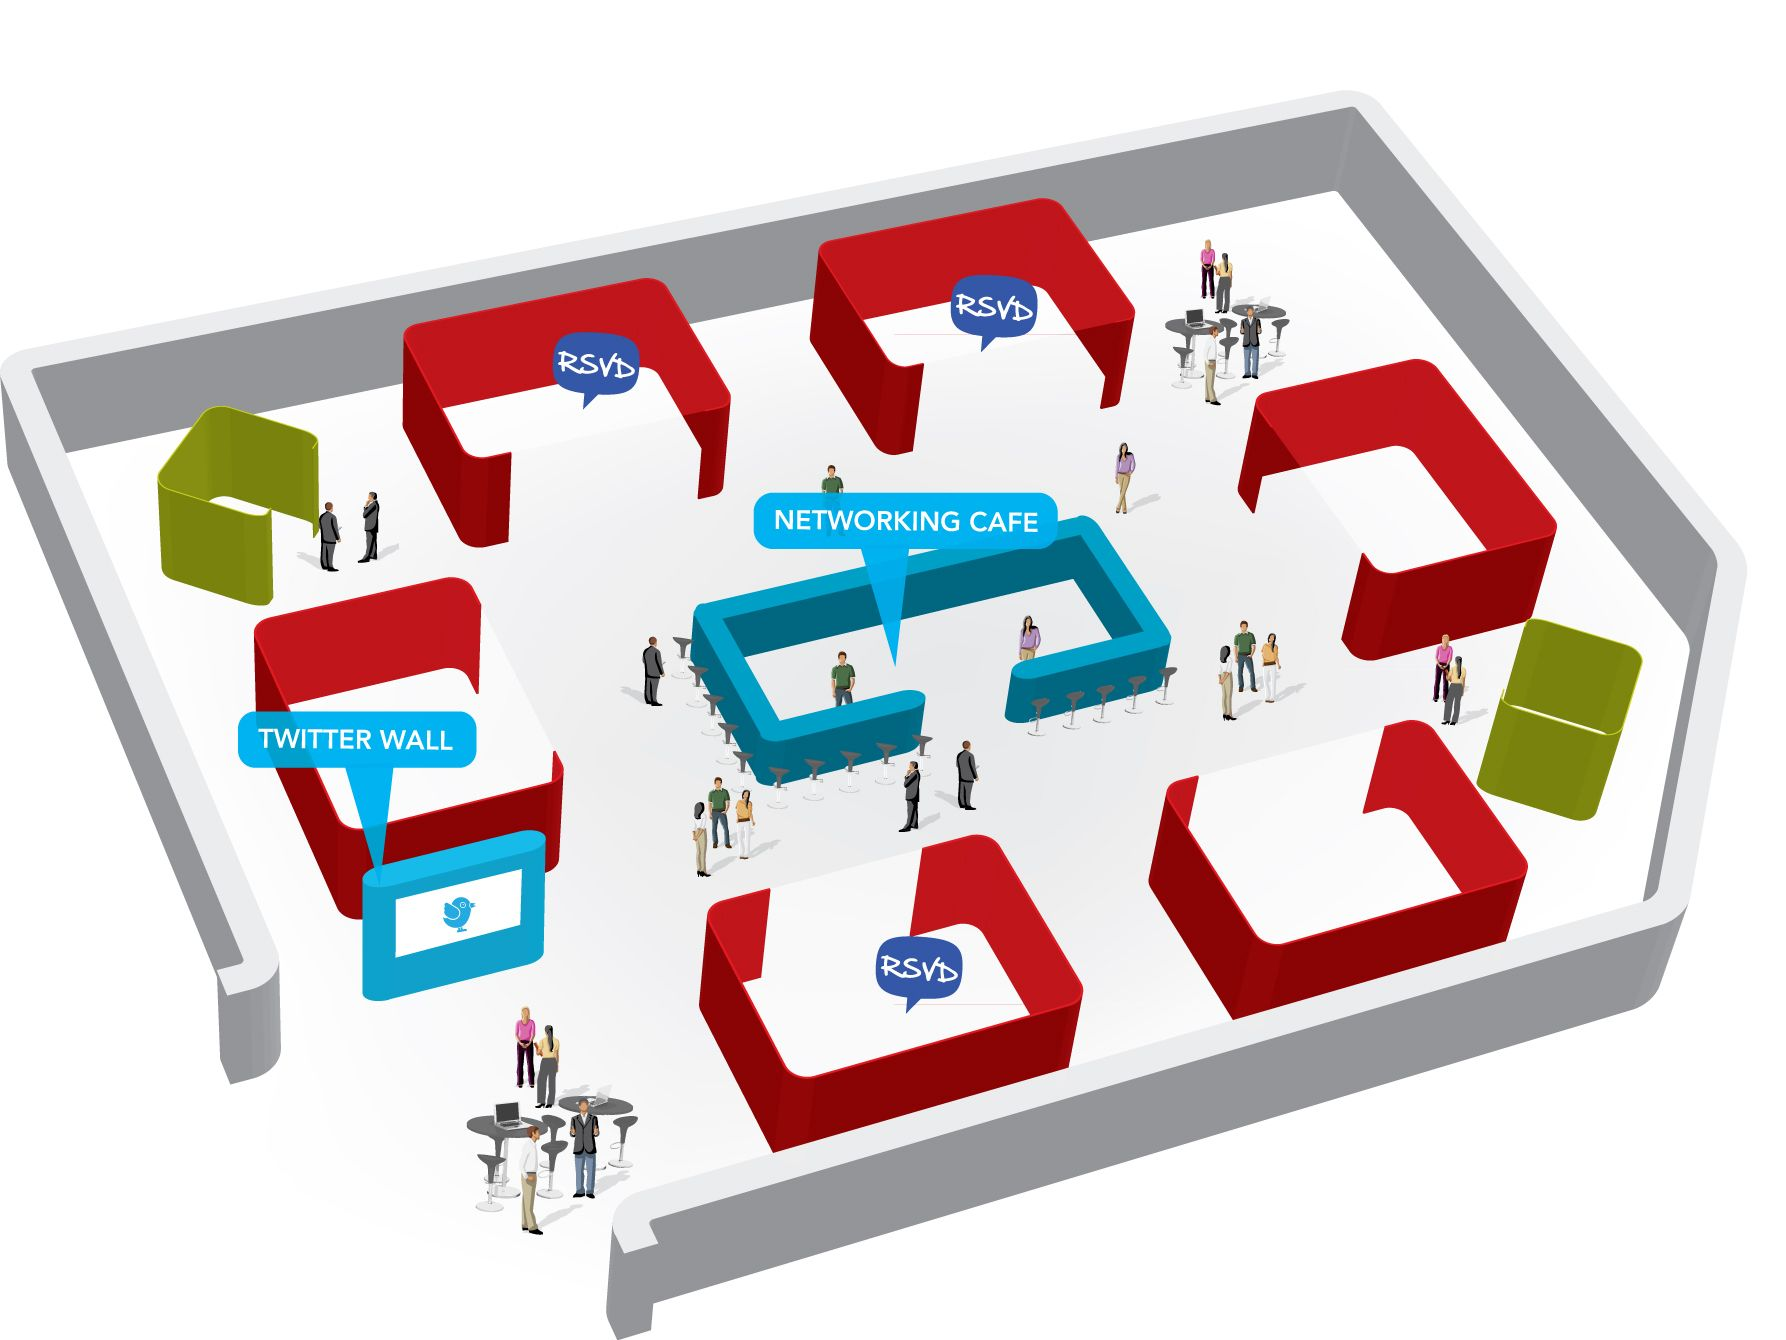 Pricing Mobile Data Bss 2014 Exhibition Floor Plan Exhibition Plan Exhibition Floor Plan Layout